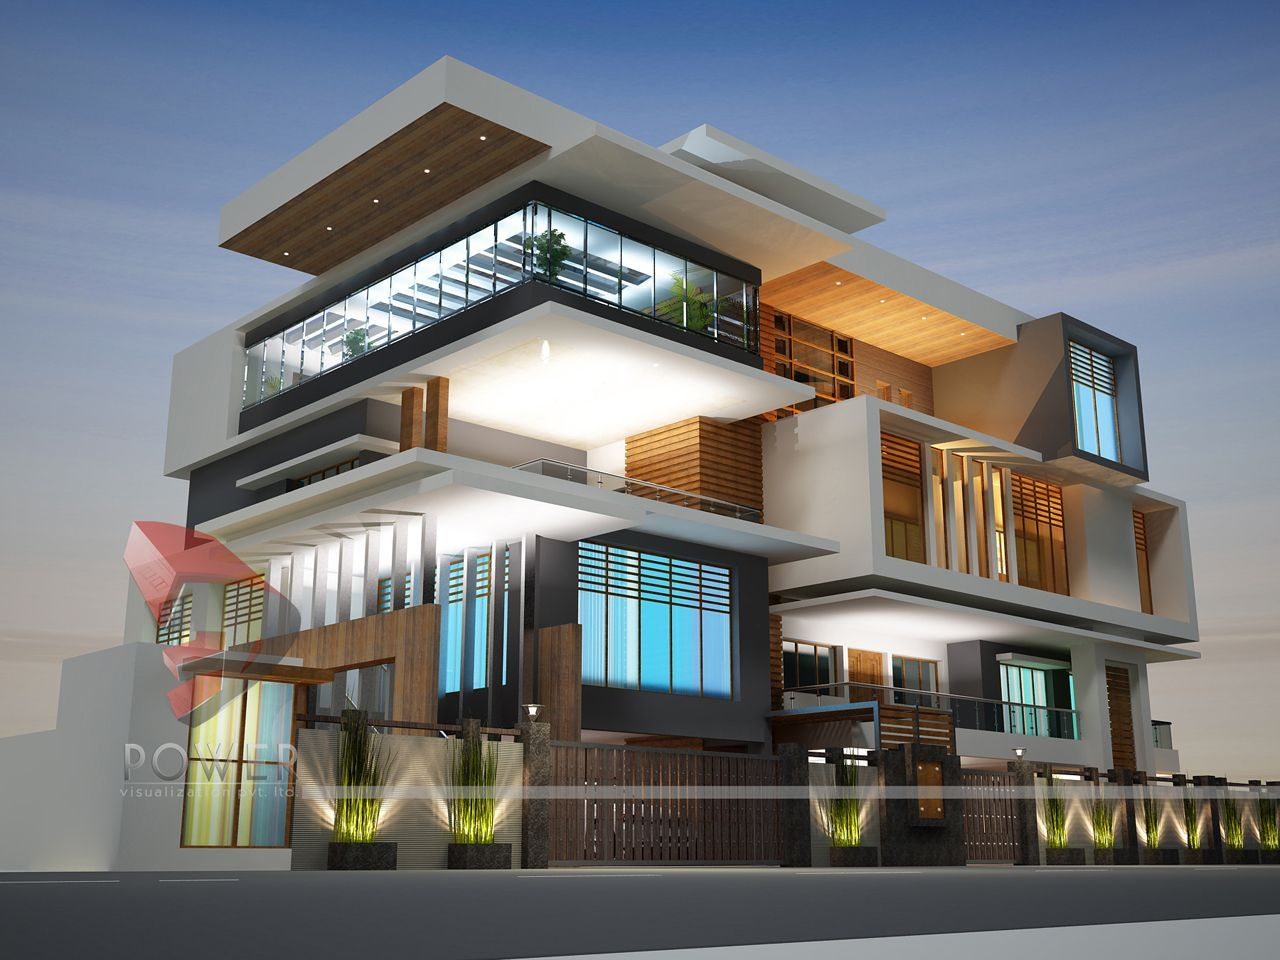 Modern house design in india architecture india modern for New house design